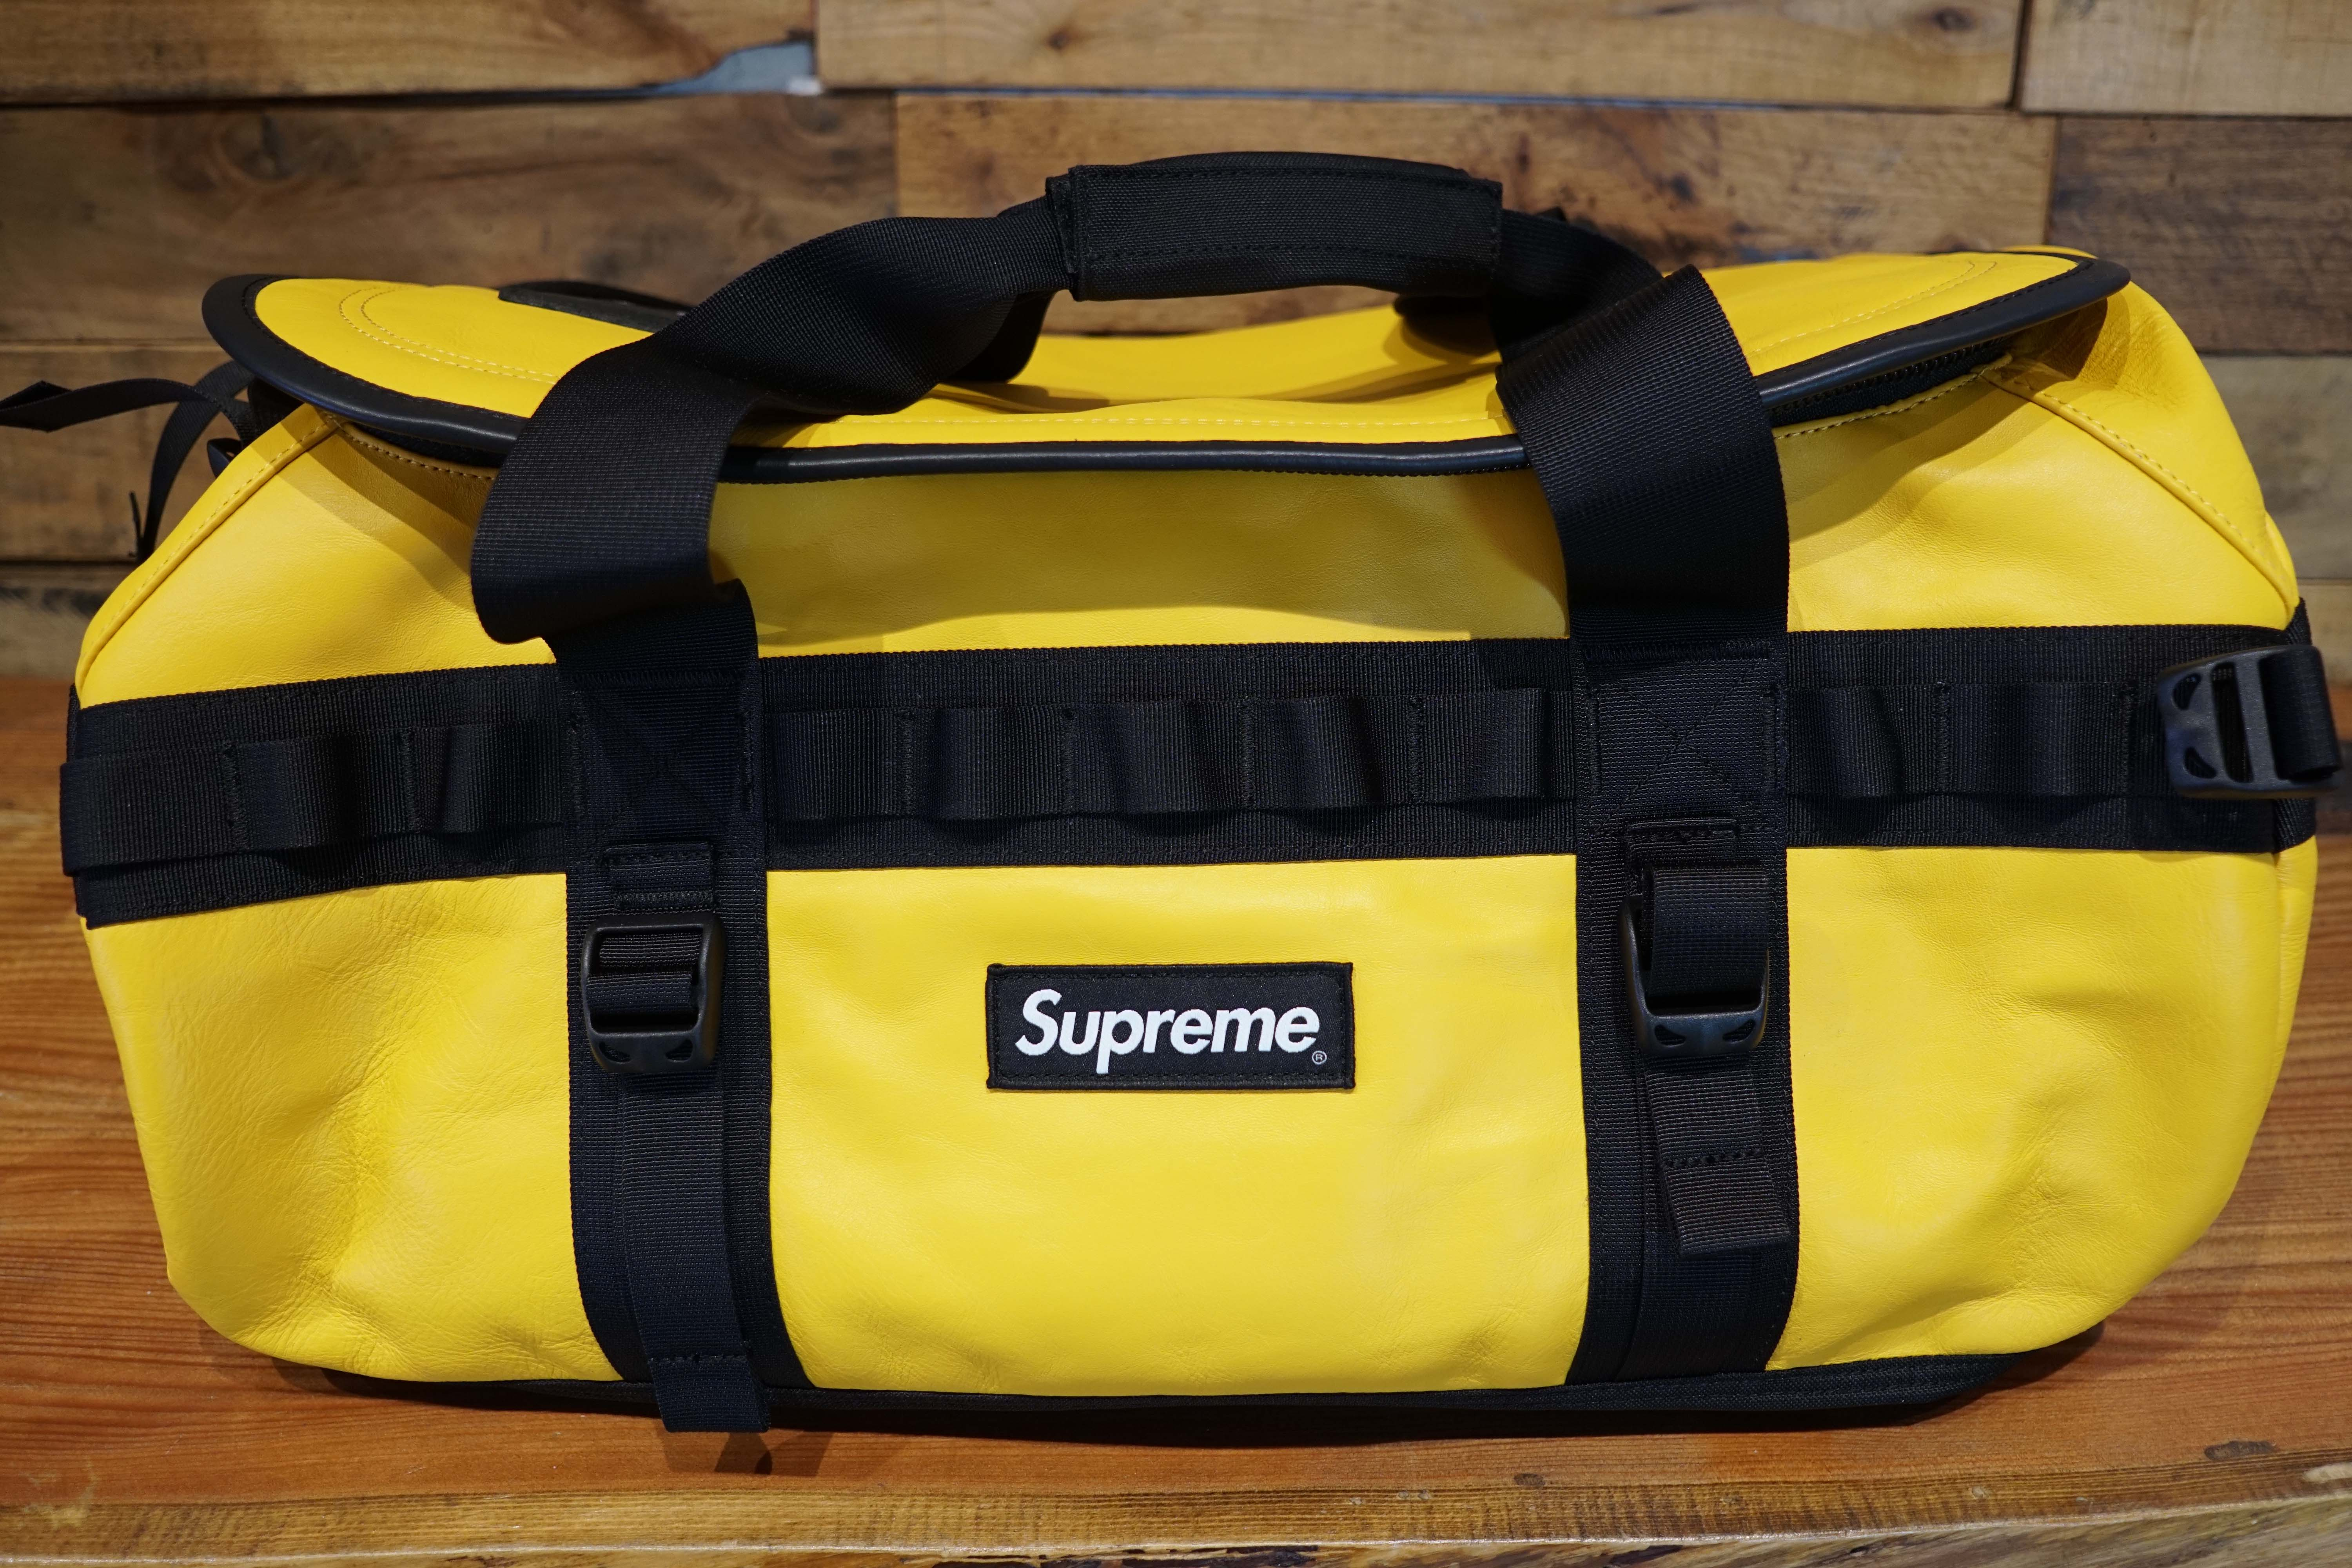 541928ab72c Supreme Duffle Bag